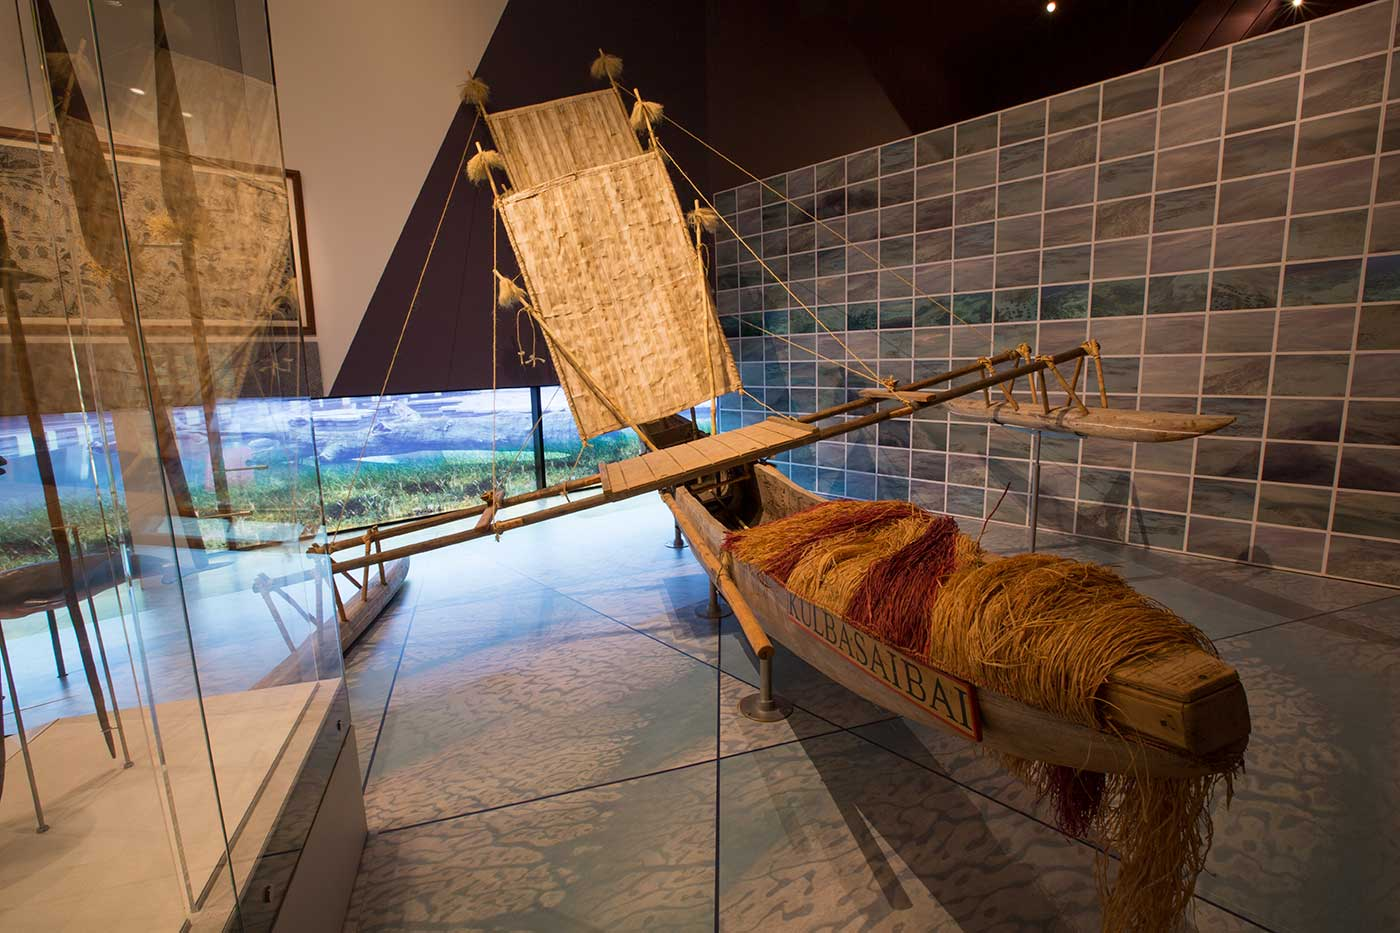 Outrigger canoe shown in gallery space - click to view larger image